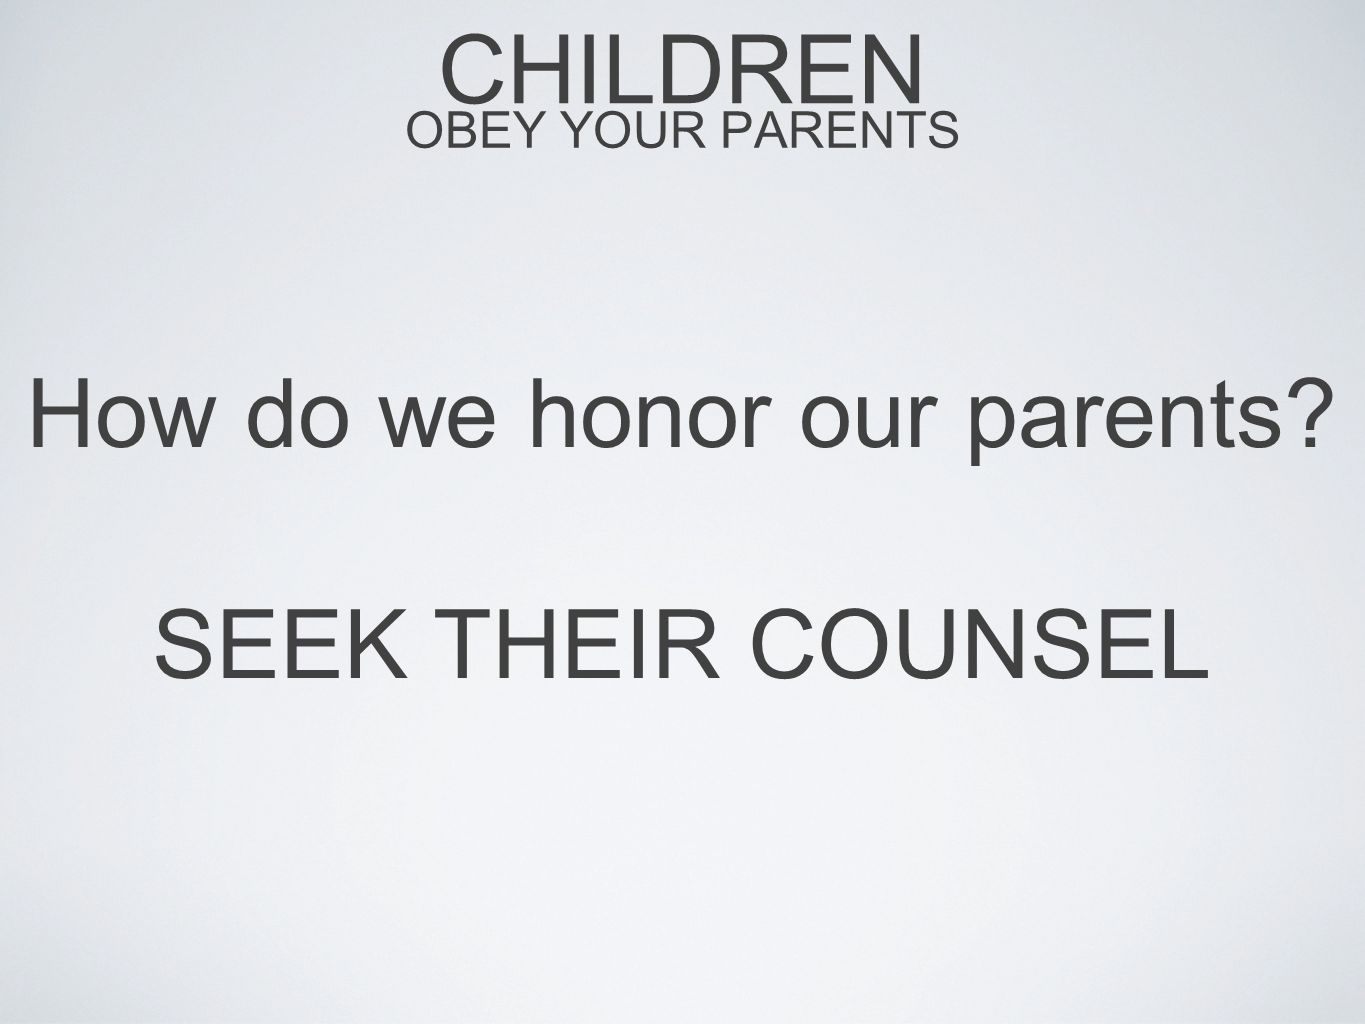 CHILDREN OBEY YOUR PARENTS How do we honor our parents? SEEK THEIR COUNSEL